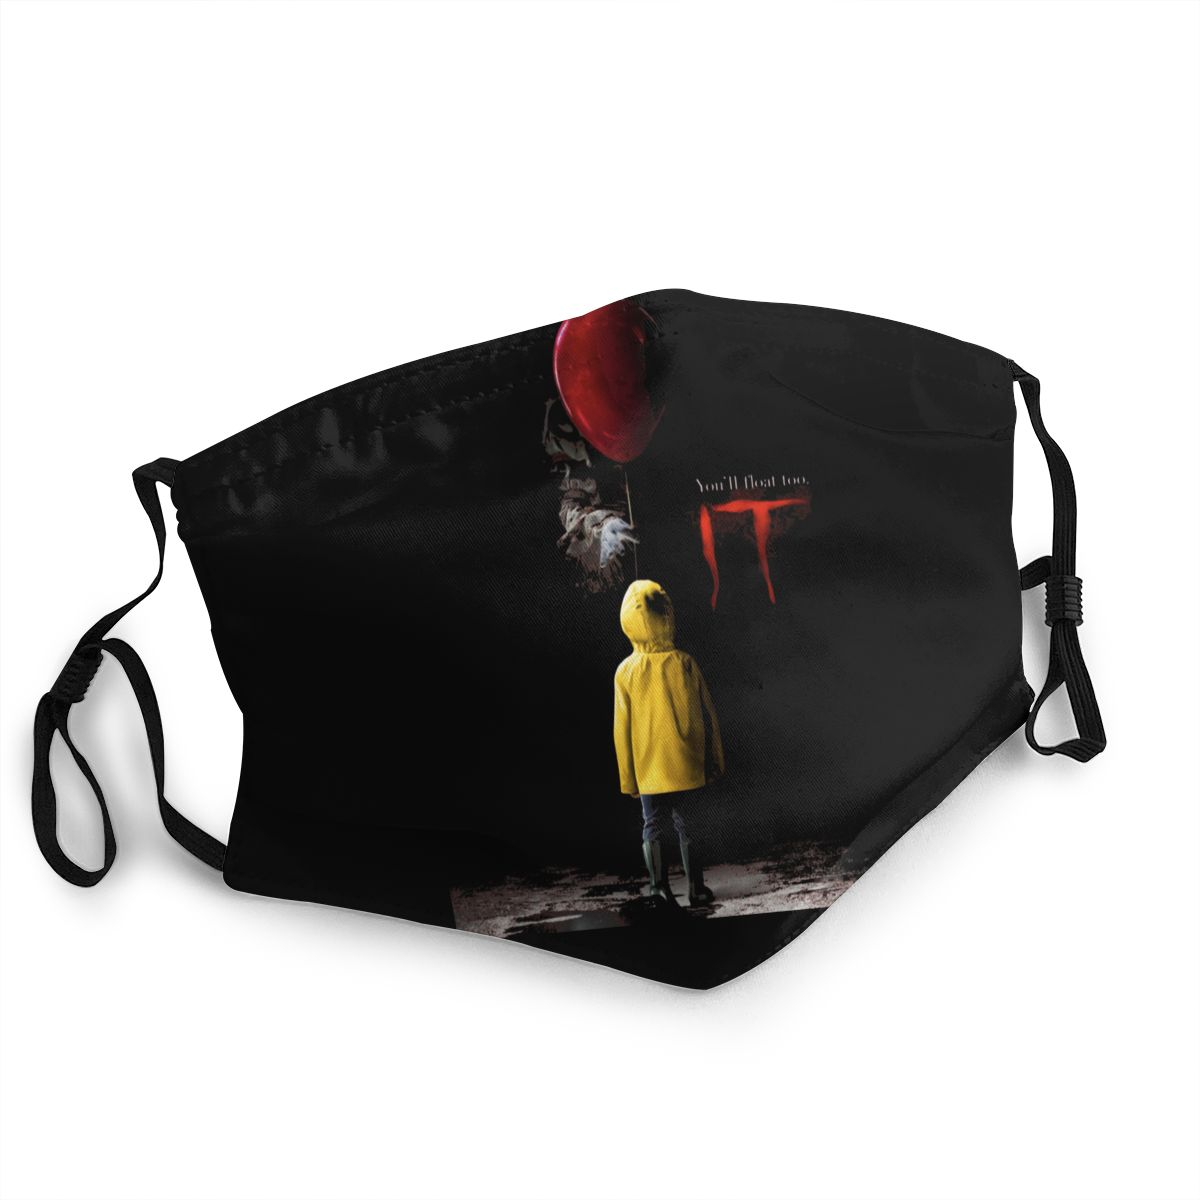 Stephen King's It Unisex Non-Disposable Face Mask Anti Haze Dustproof Mask Protection Cover Respirator Mouth Muffle